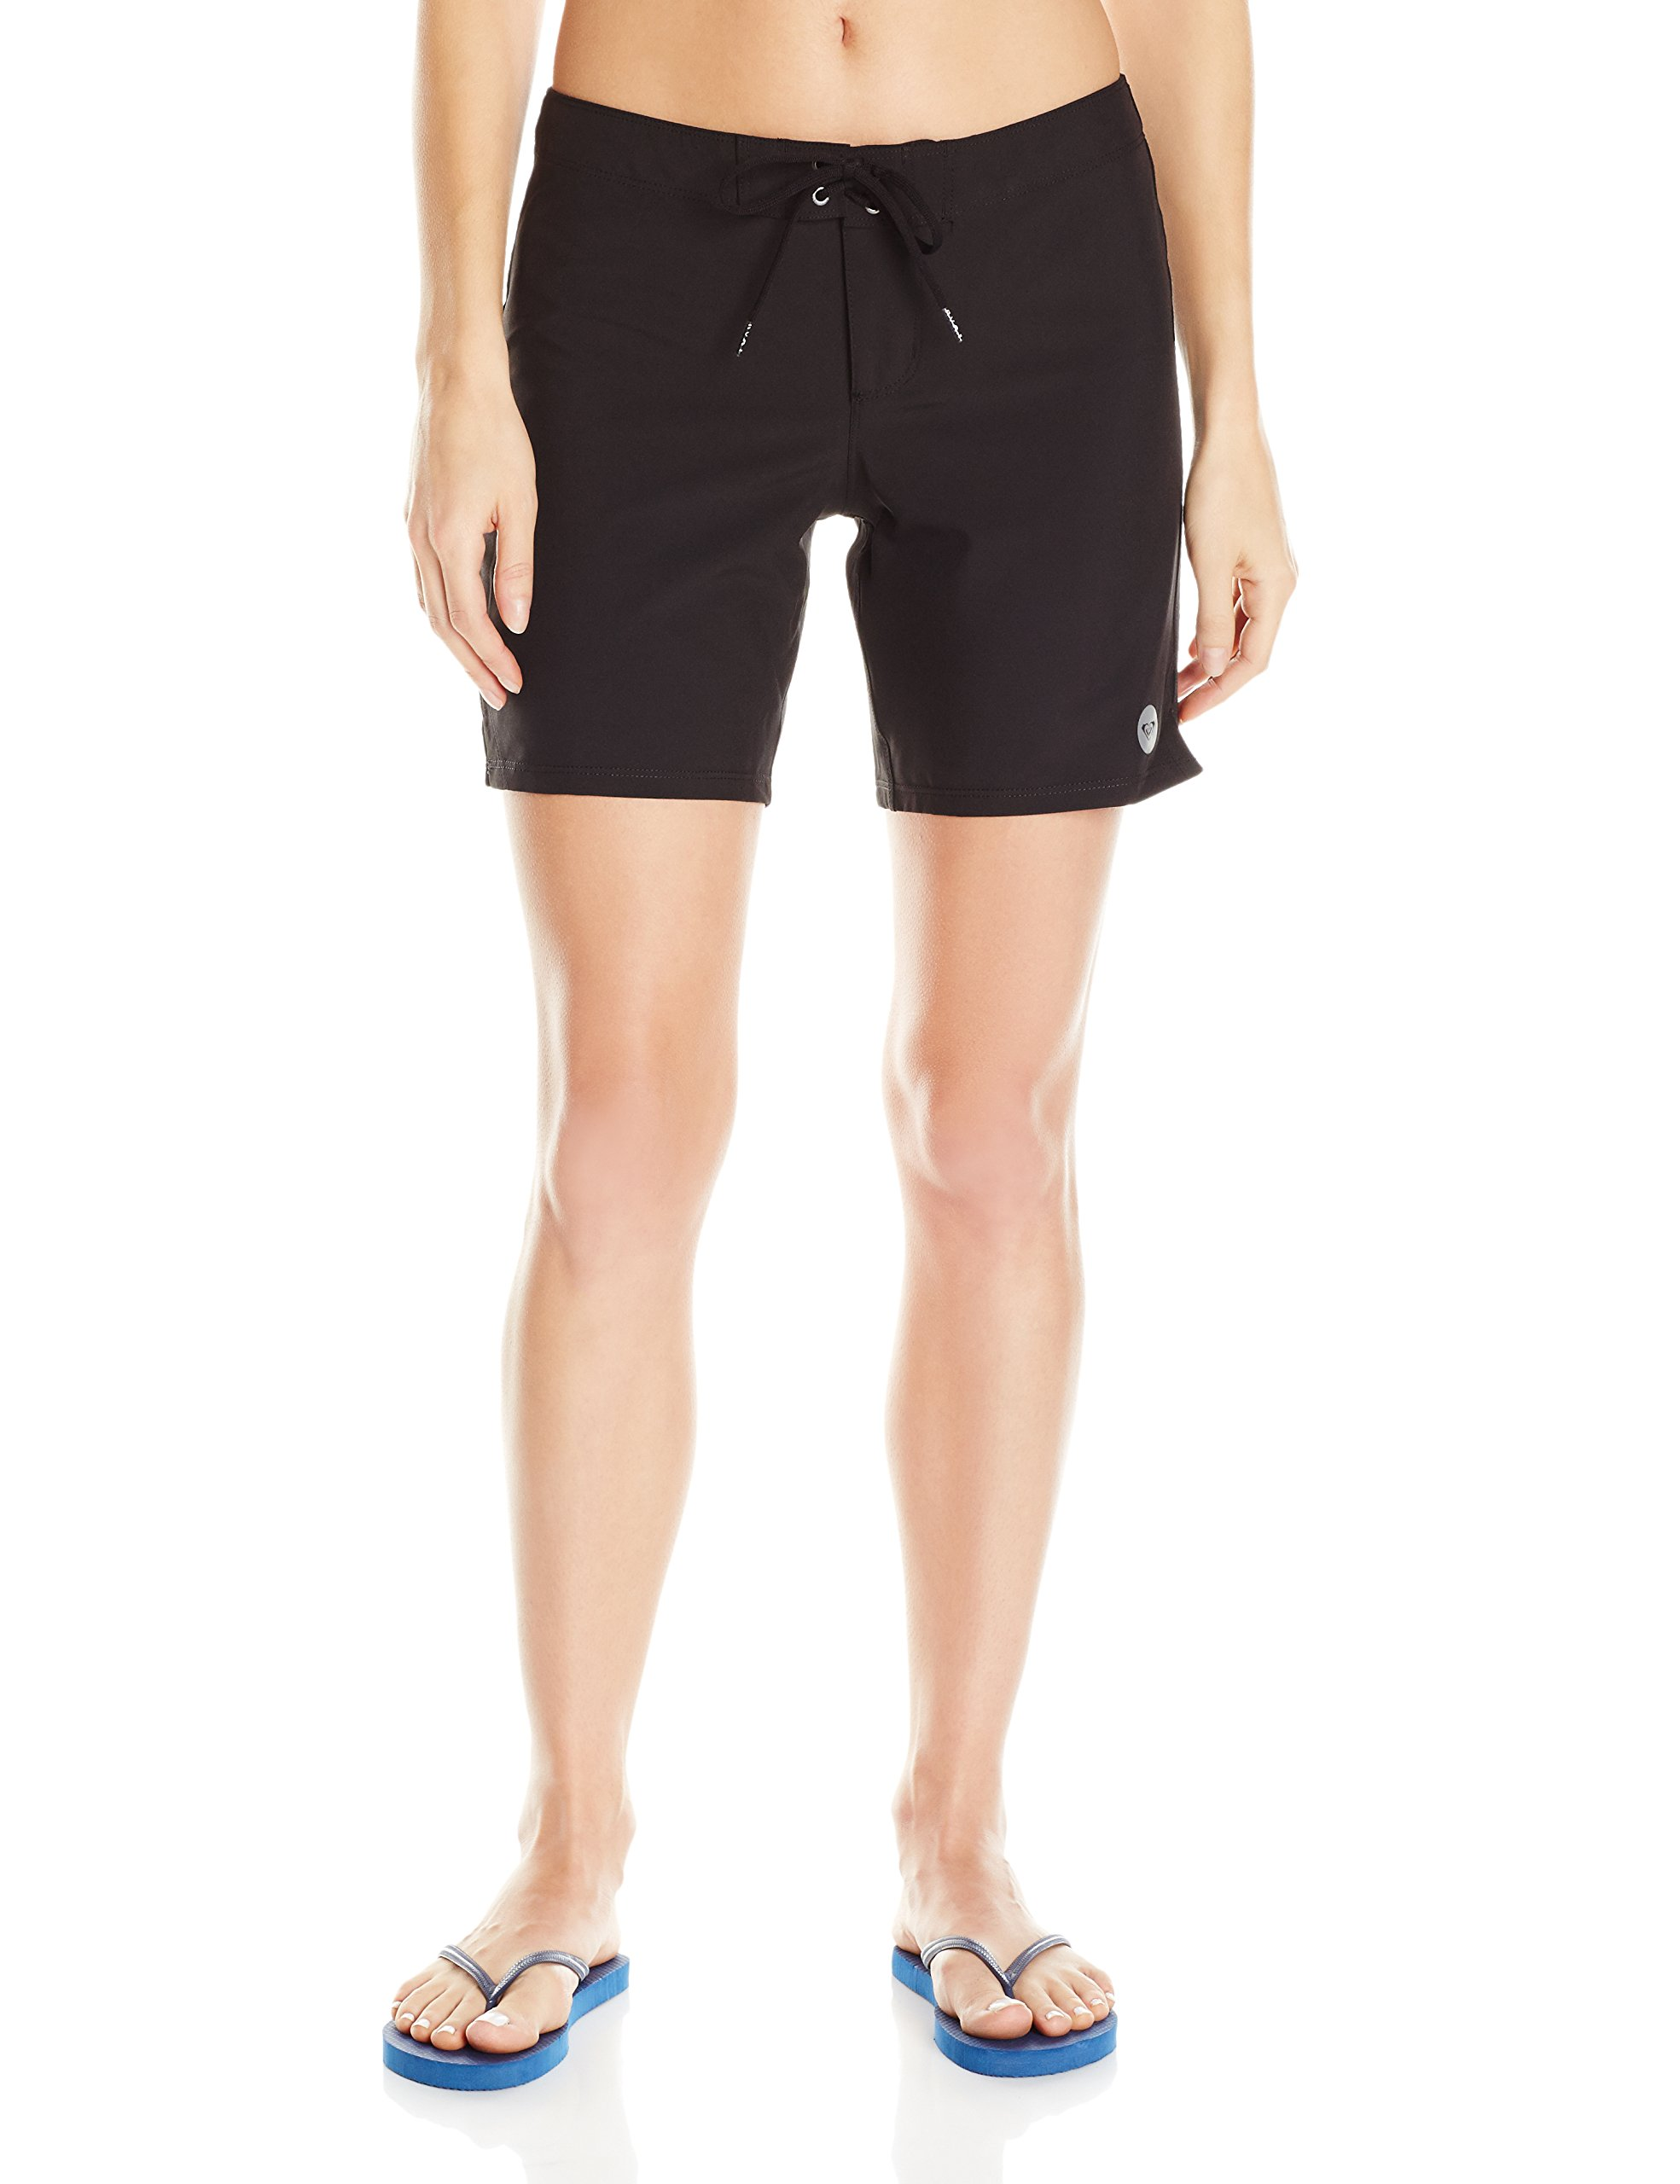 Roxy Women's to Dye 7 Inch Boardshort, True Black, XS by Roxy